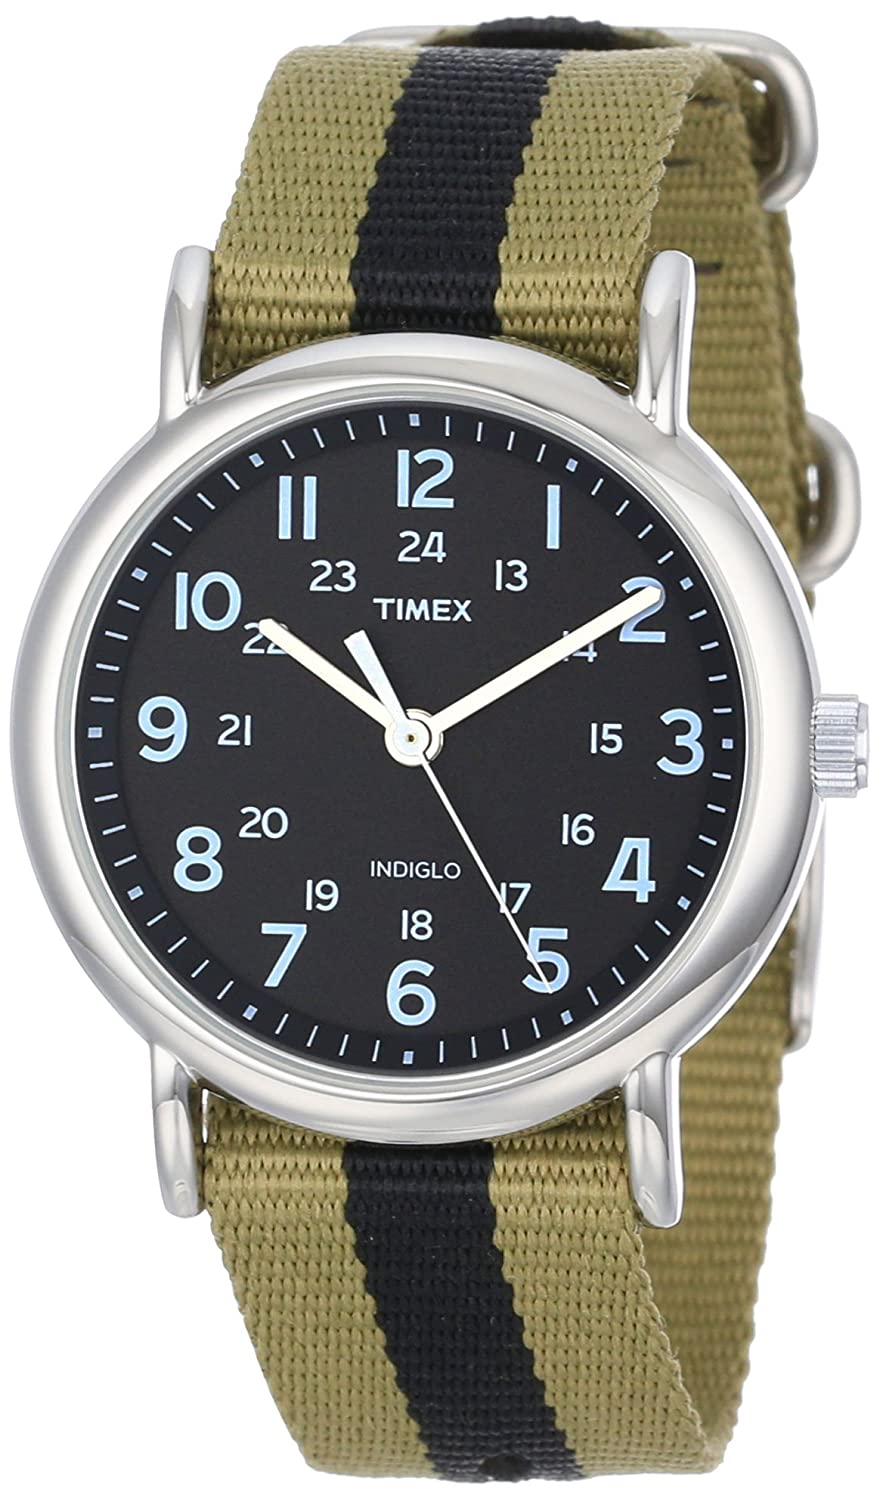 42% discount on Timex Weekender Indiglo Analog Grey Dial Unisex Watch @1745 at Amazon